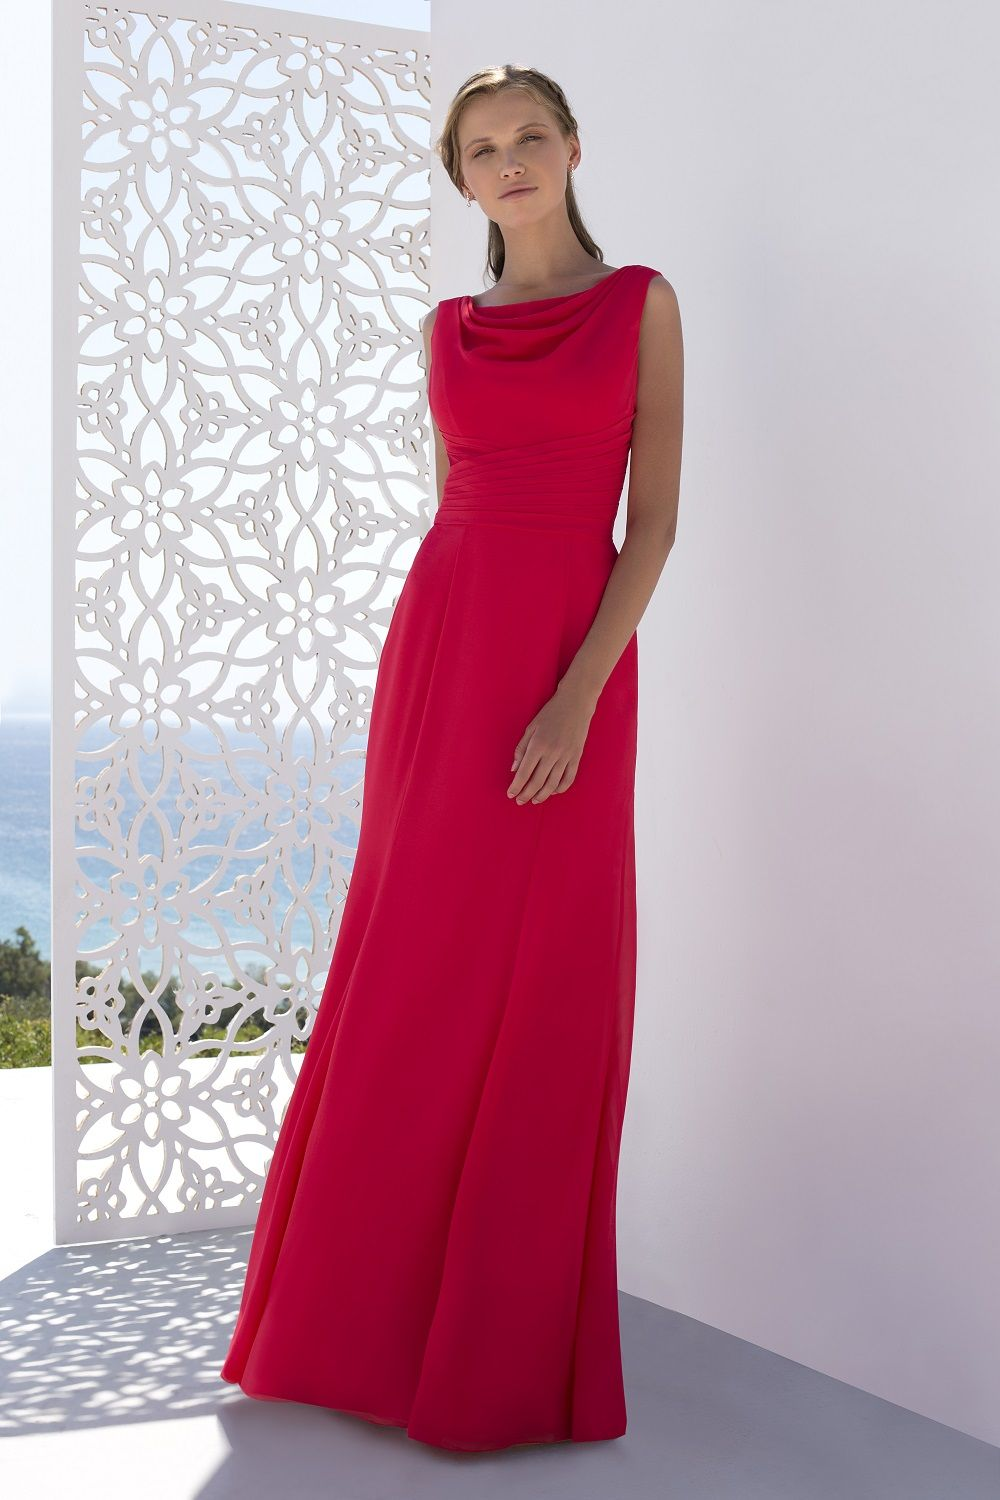 d8a3f62ec6323 Morgan - Bridesmaid Dresses - Not Another Boring Bridesmaid Dress - NABBD